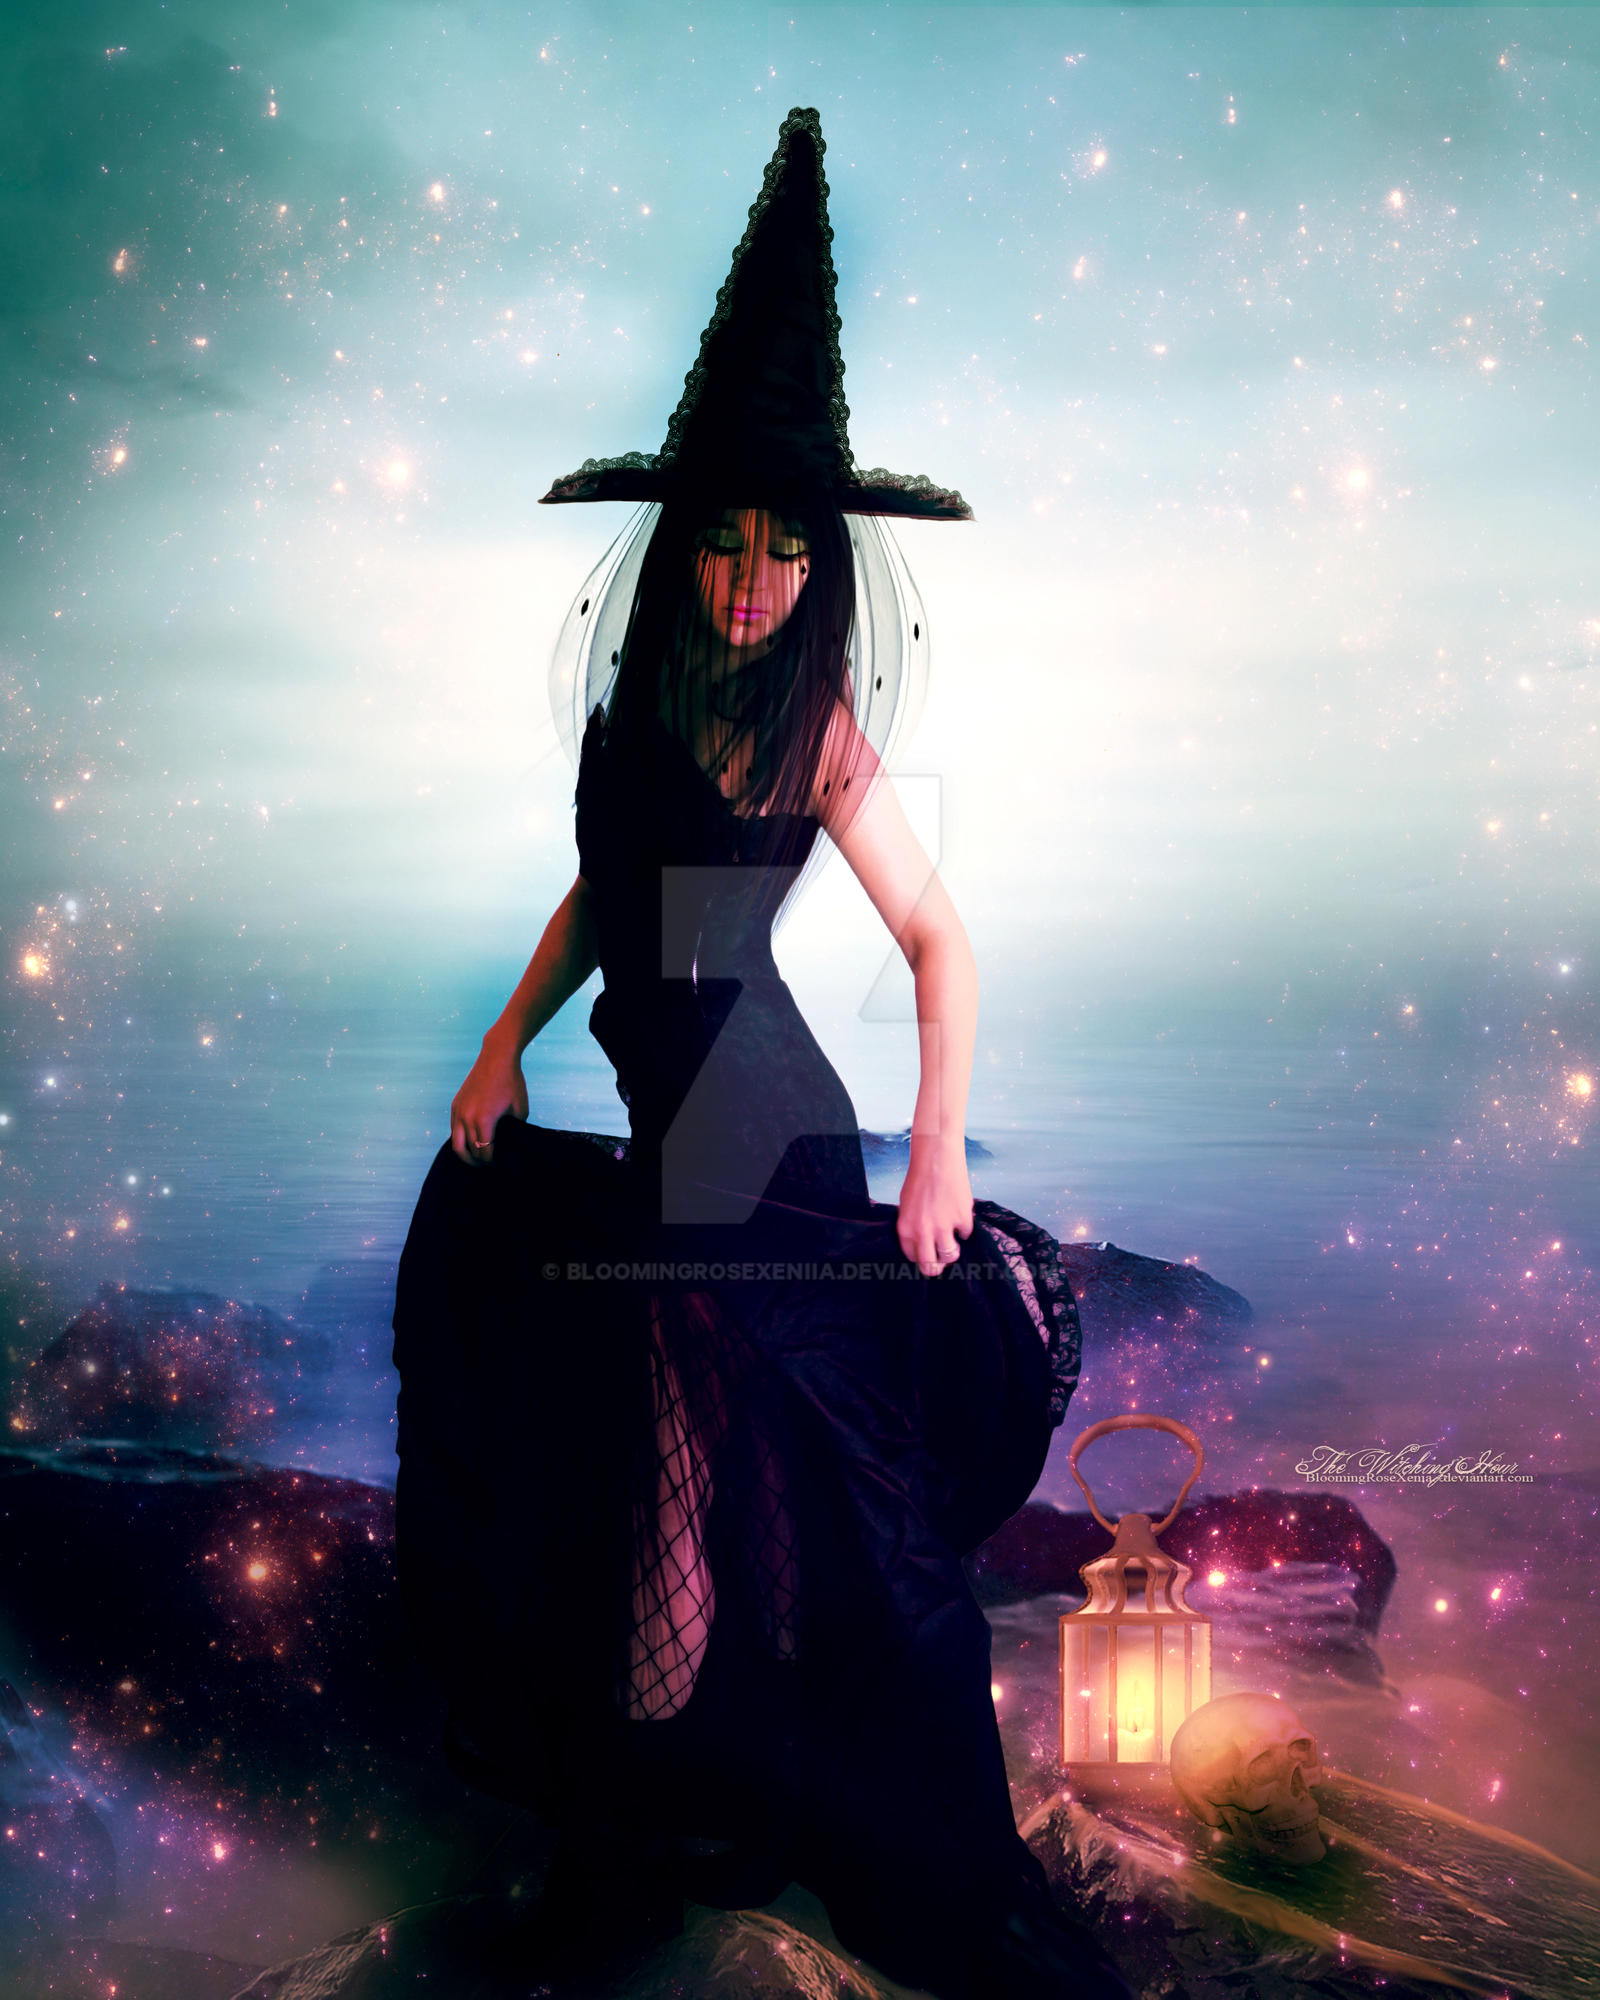 The Witching Hour by BloomingRoseXeniia